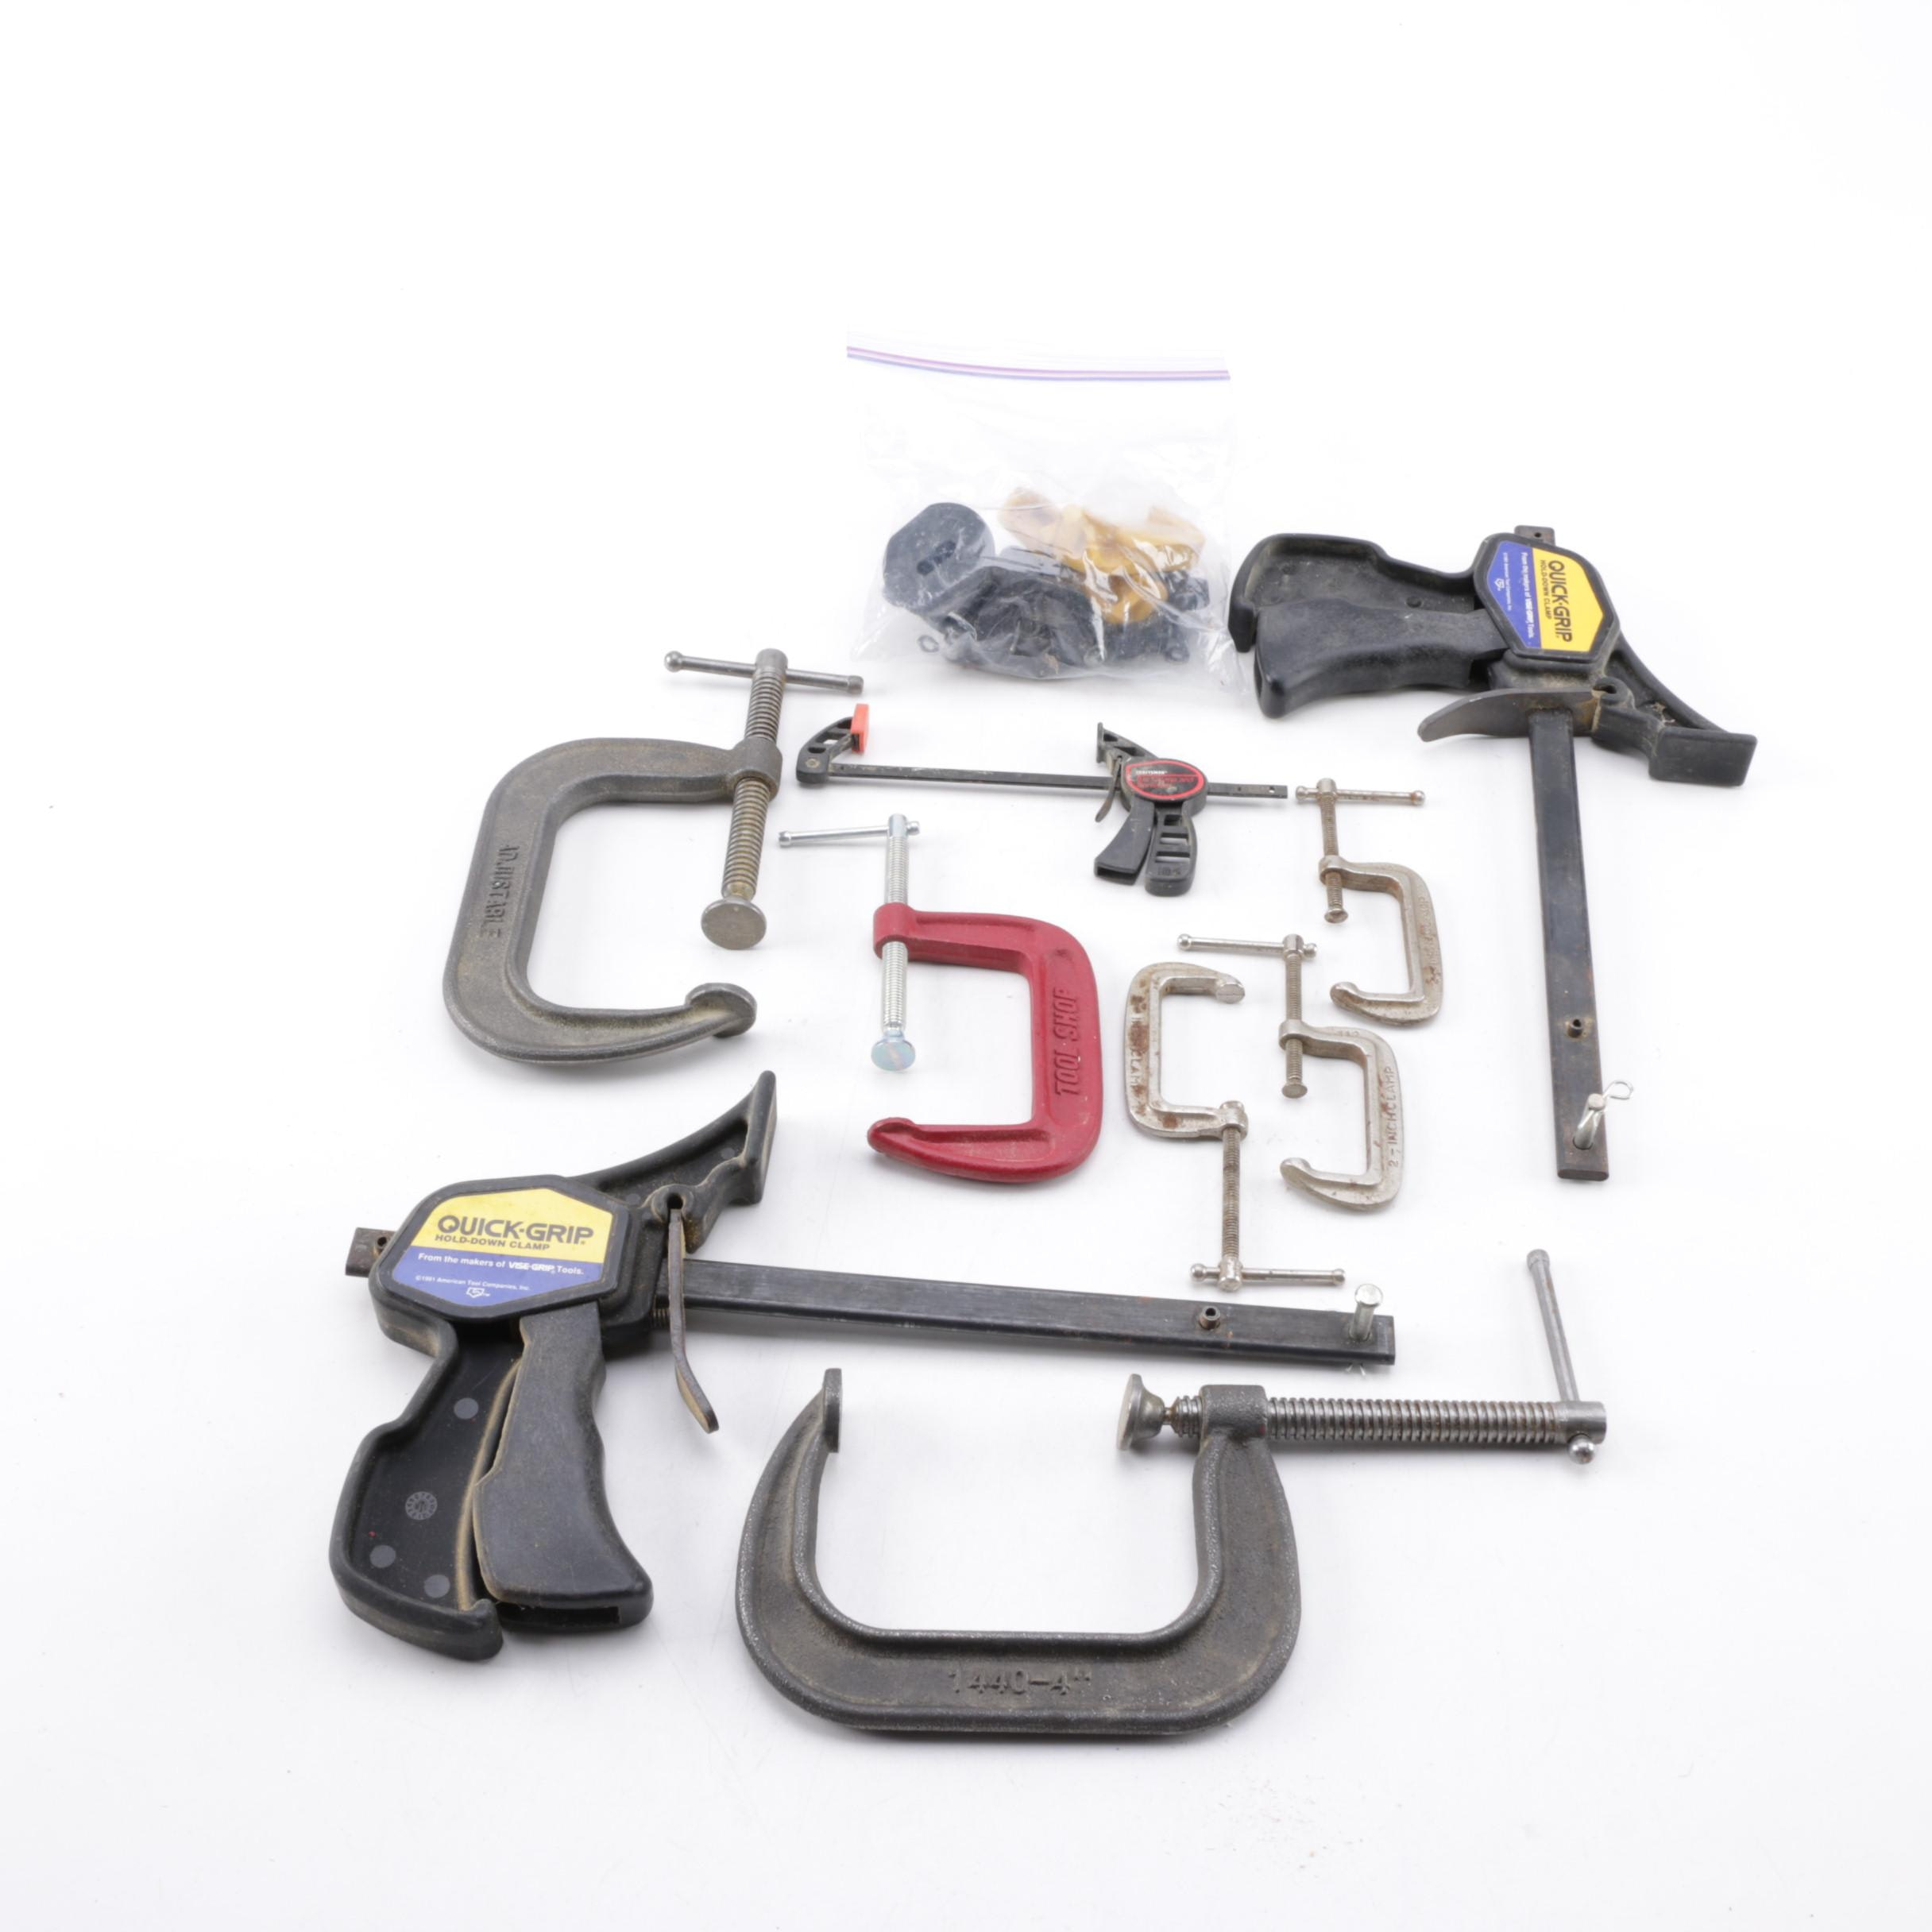 Collection of Clamps